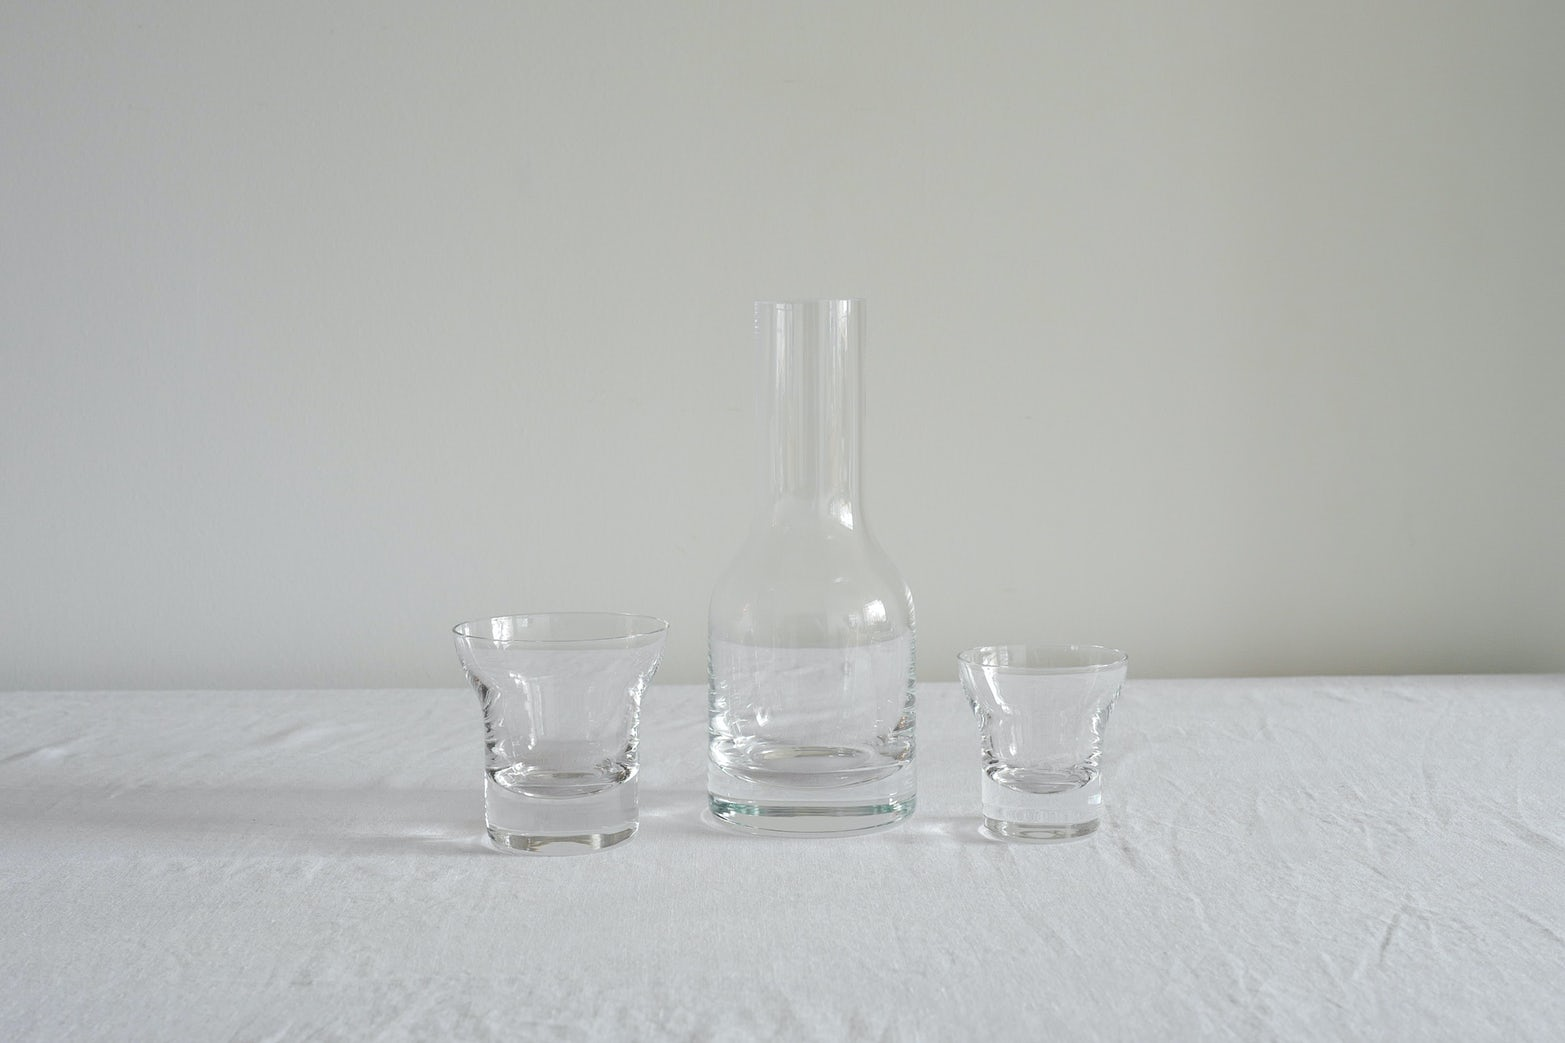 John pawson wine glass 1 File